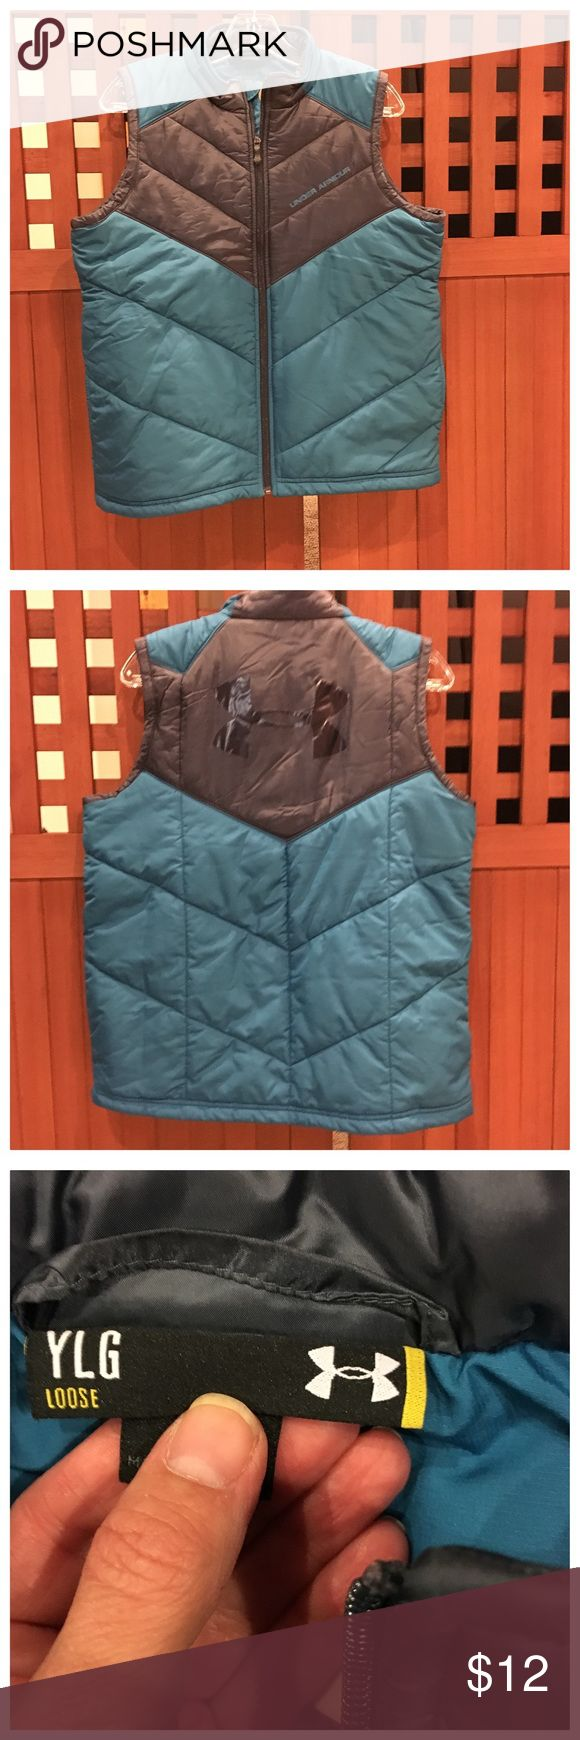 Youth Under Armour Vest Under Armour Vest. Vest is a lightweight puffer vest. Worn and loved.  Size: L Jackets & Coats Vests